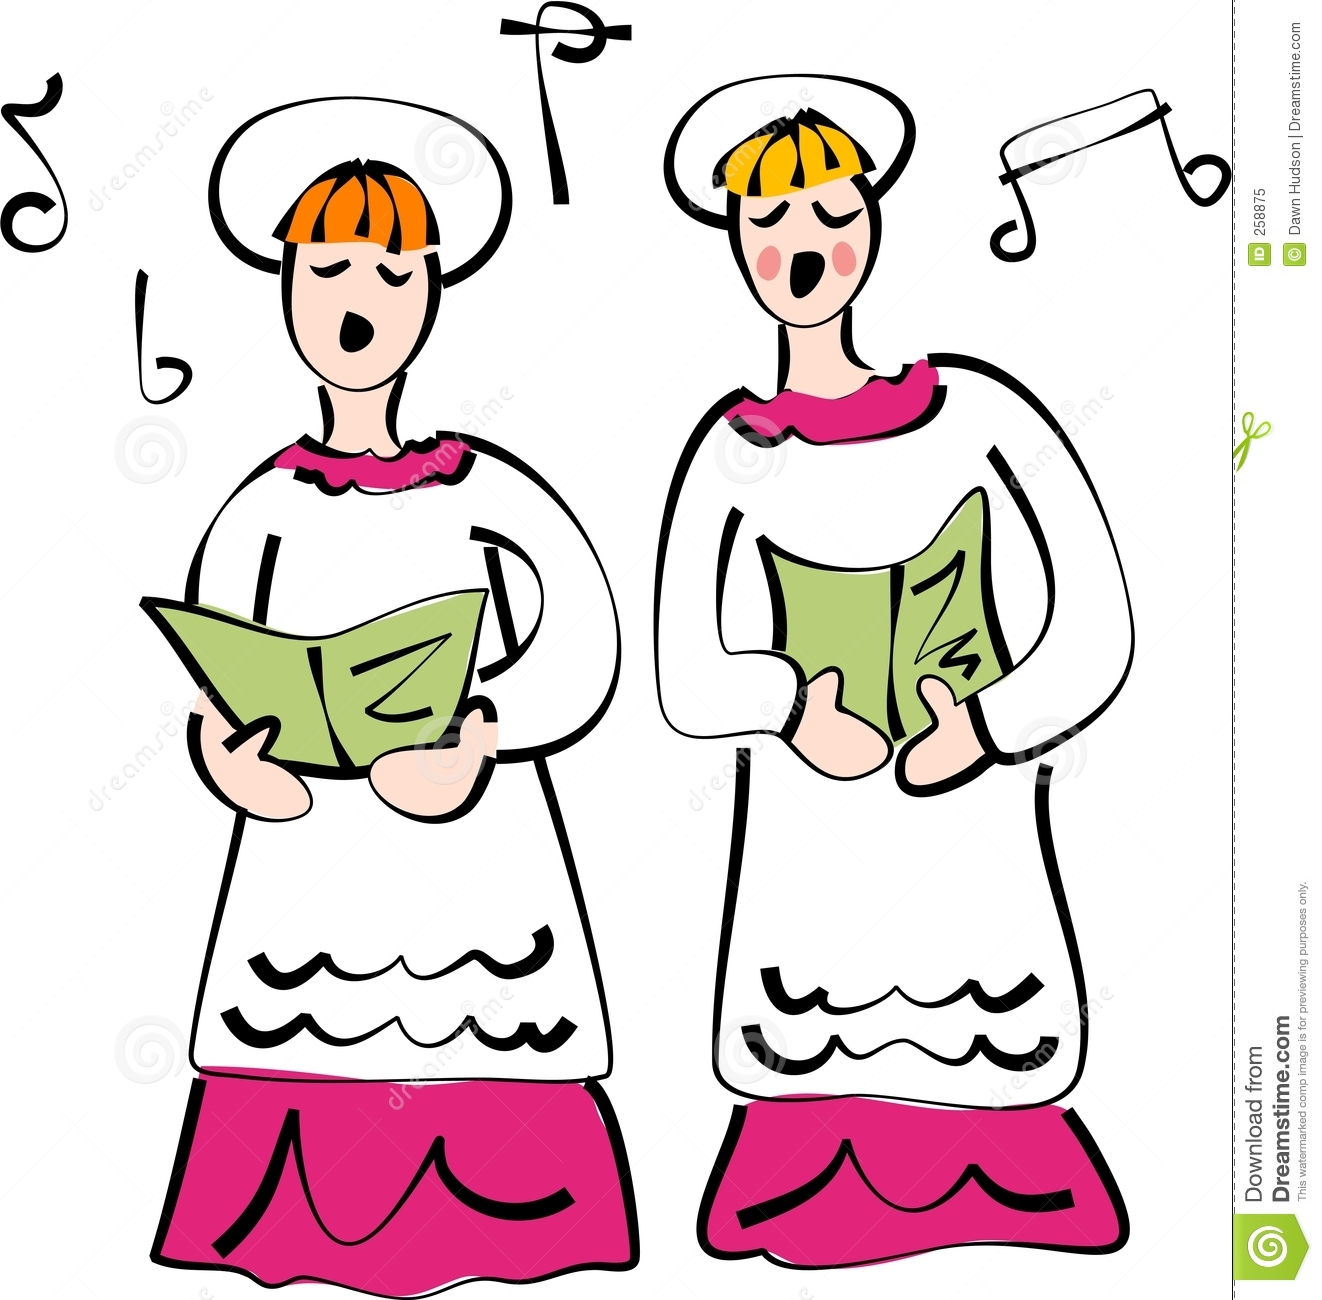 Church Choir Royalty Free Stock Photo - Image: 258875